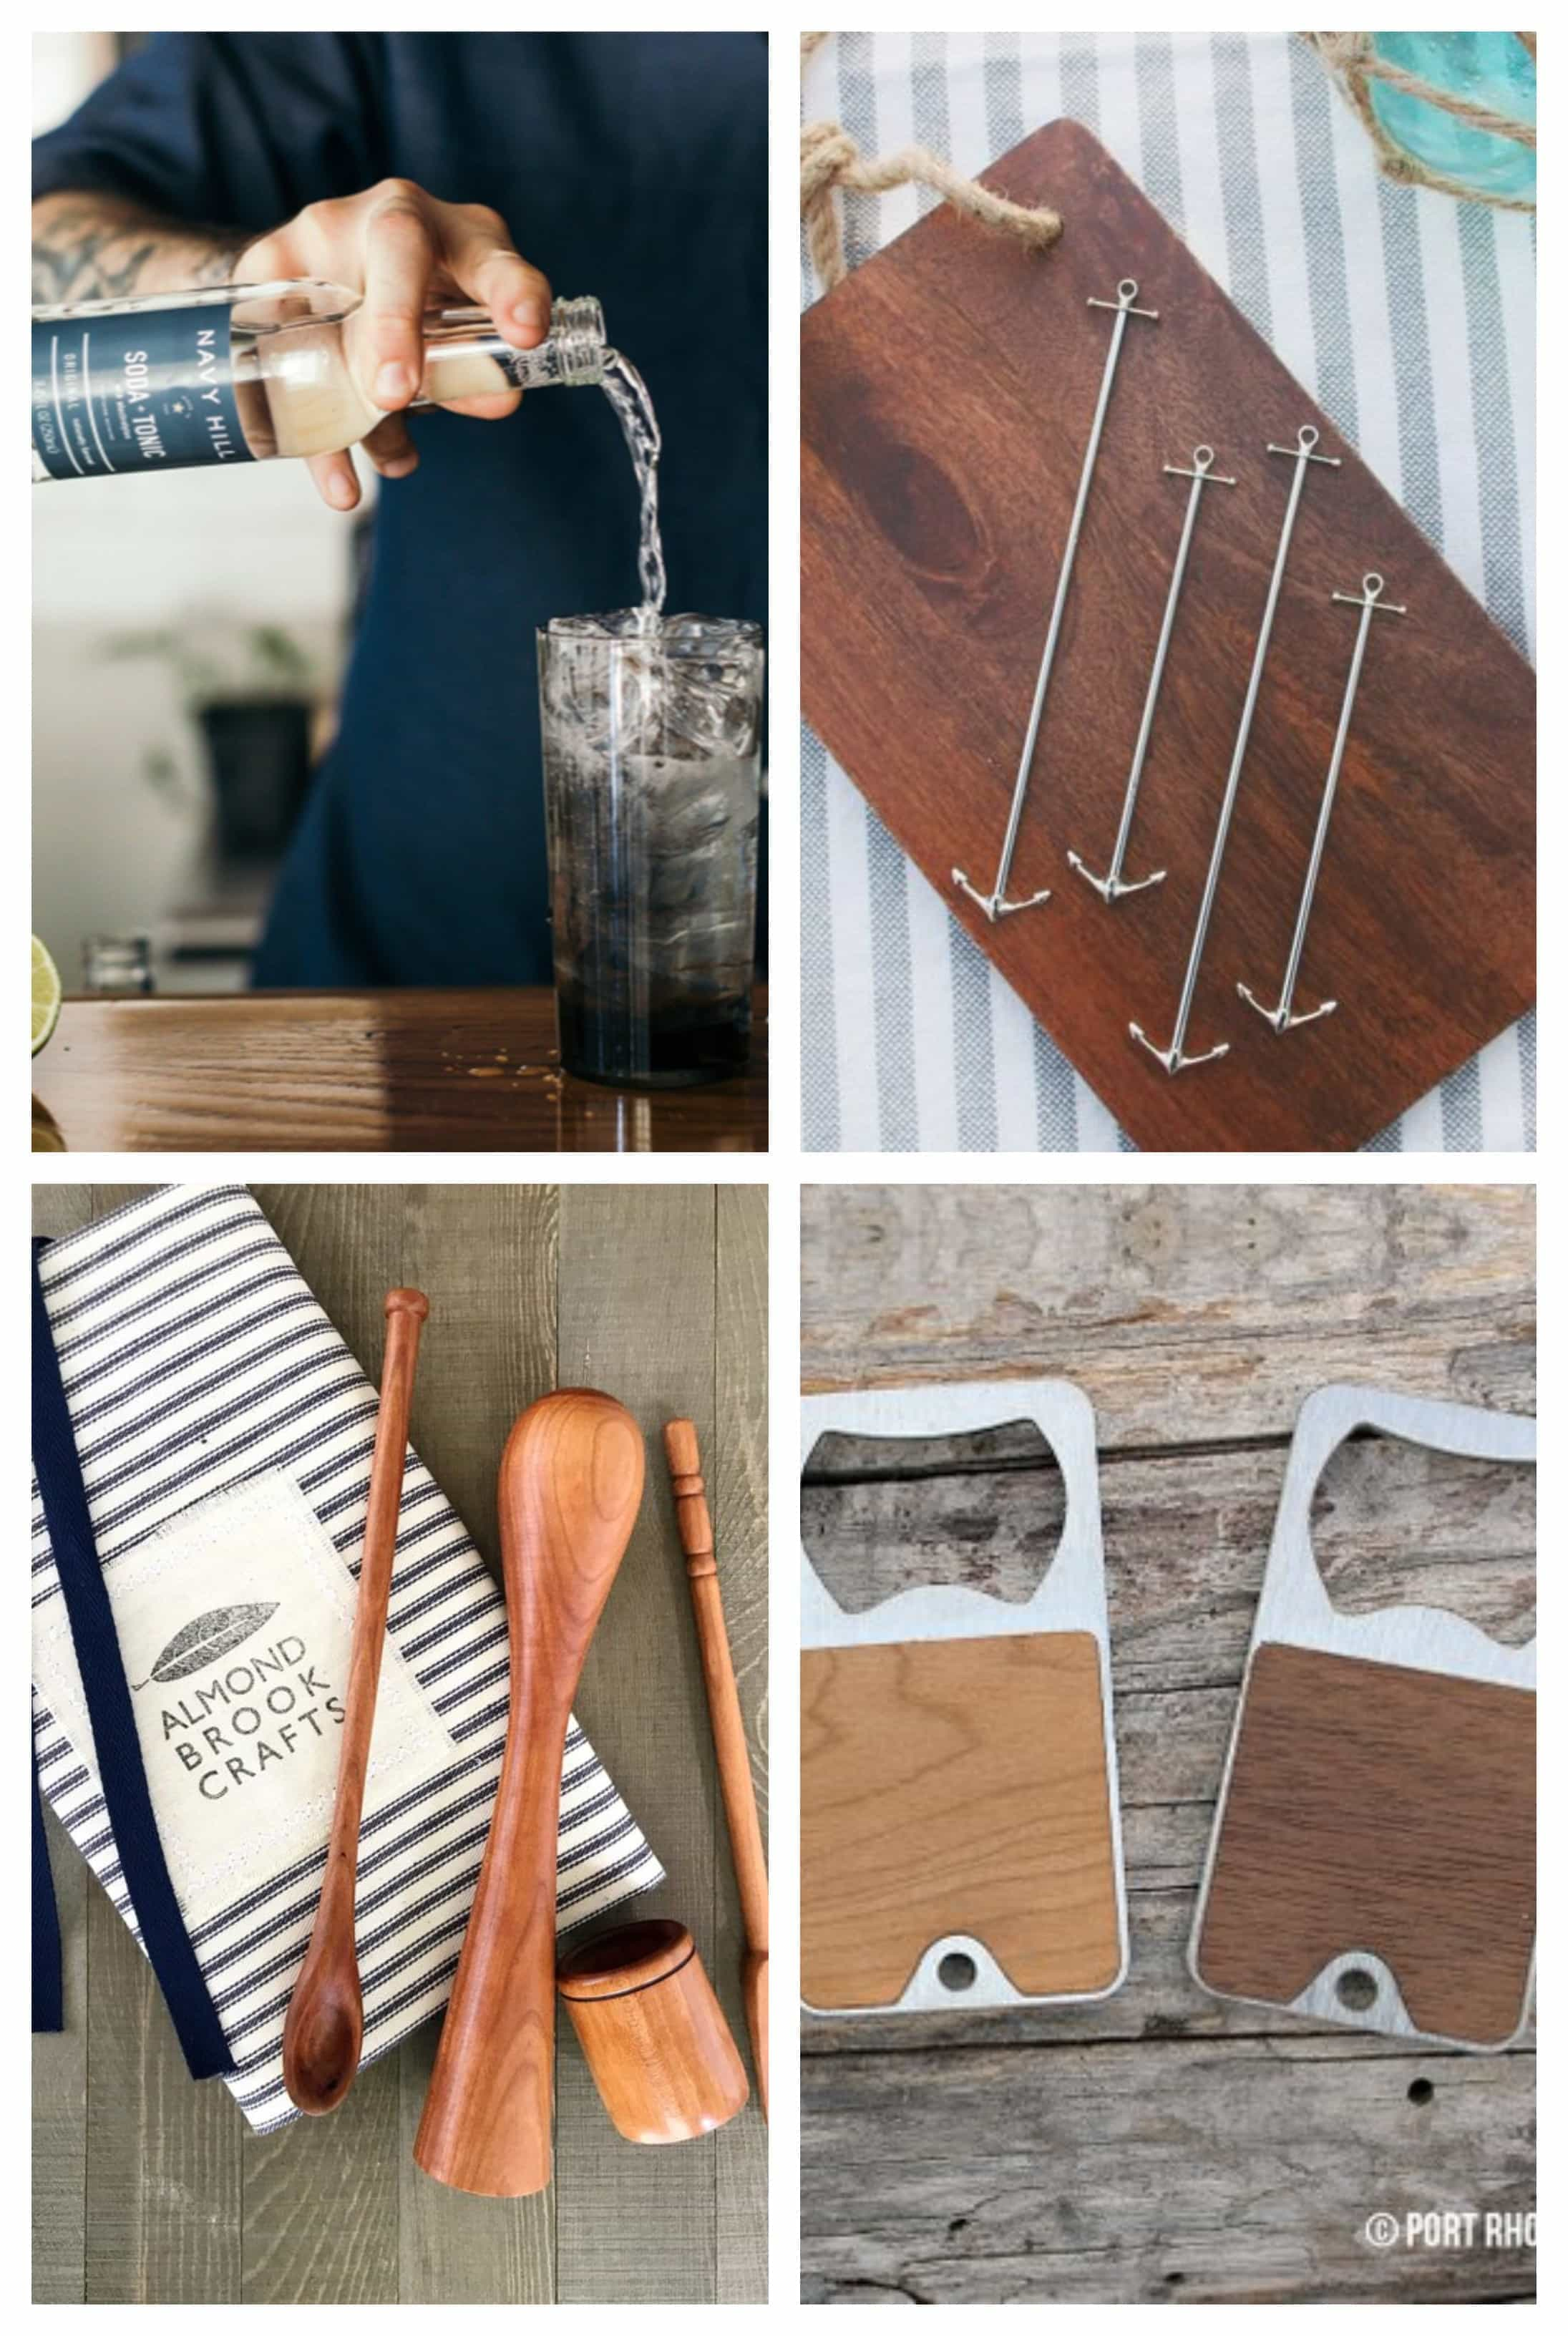 Looking for gifts for the home mixologist? We've got you covered! Our picks for snazzy drink accessories, classic bartending tools and small batch mixers are sure to delight! #giftguide #cocktail #mixologist #happyhour